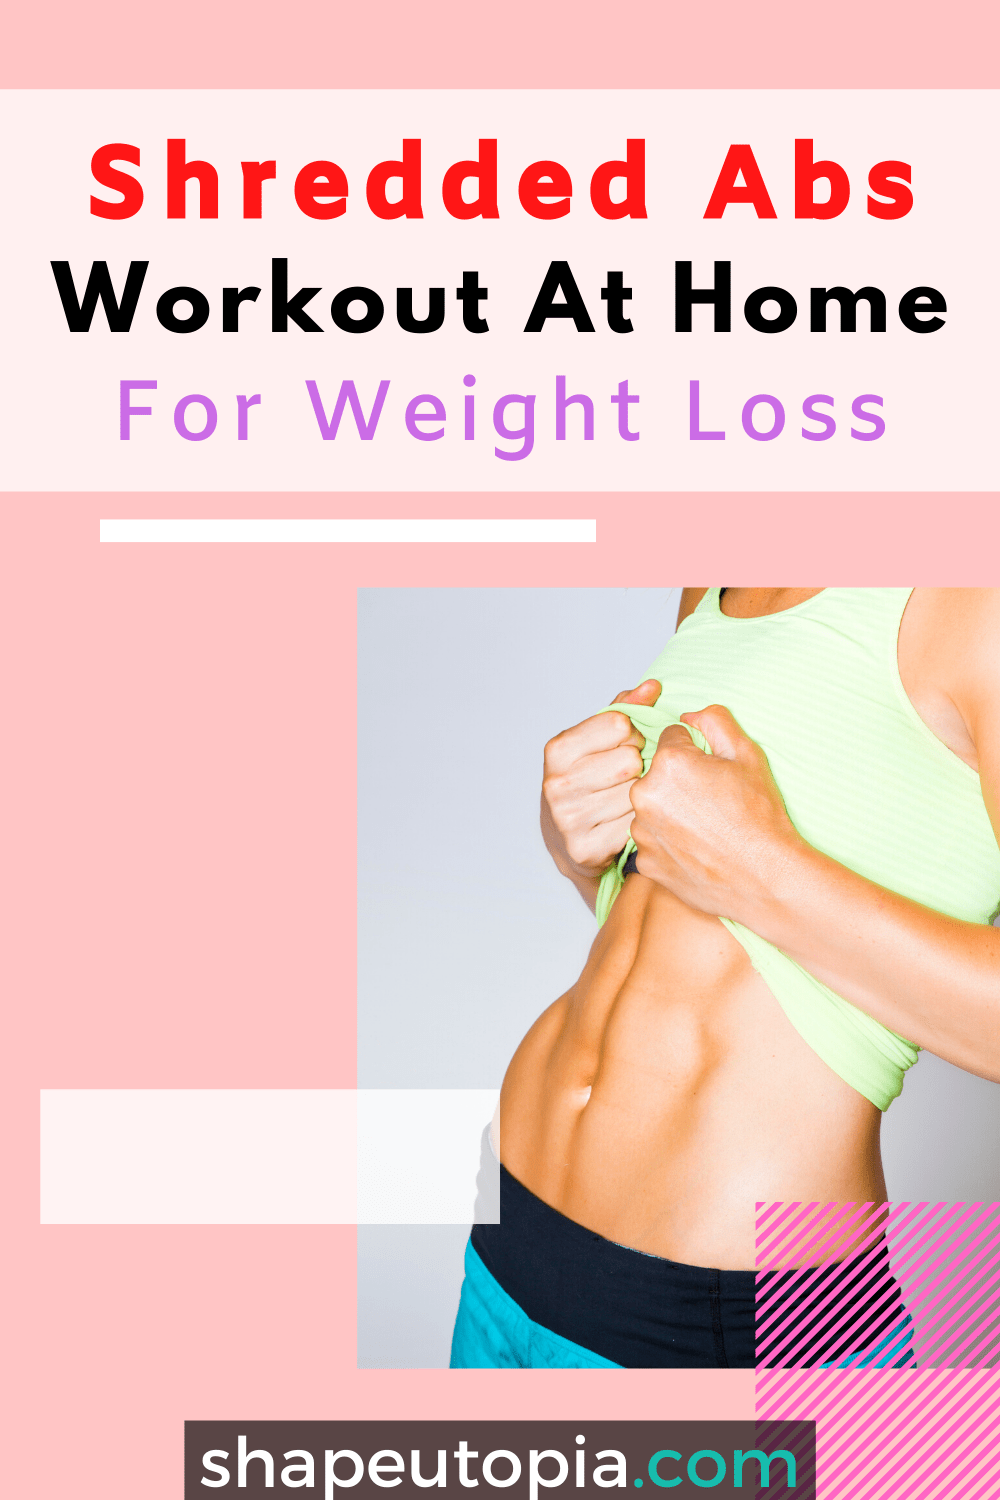 Shredded Abs Workout At Home For Weight Loss